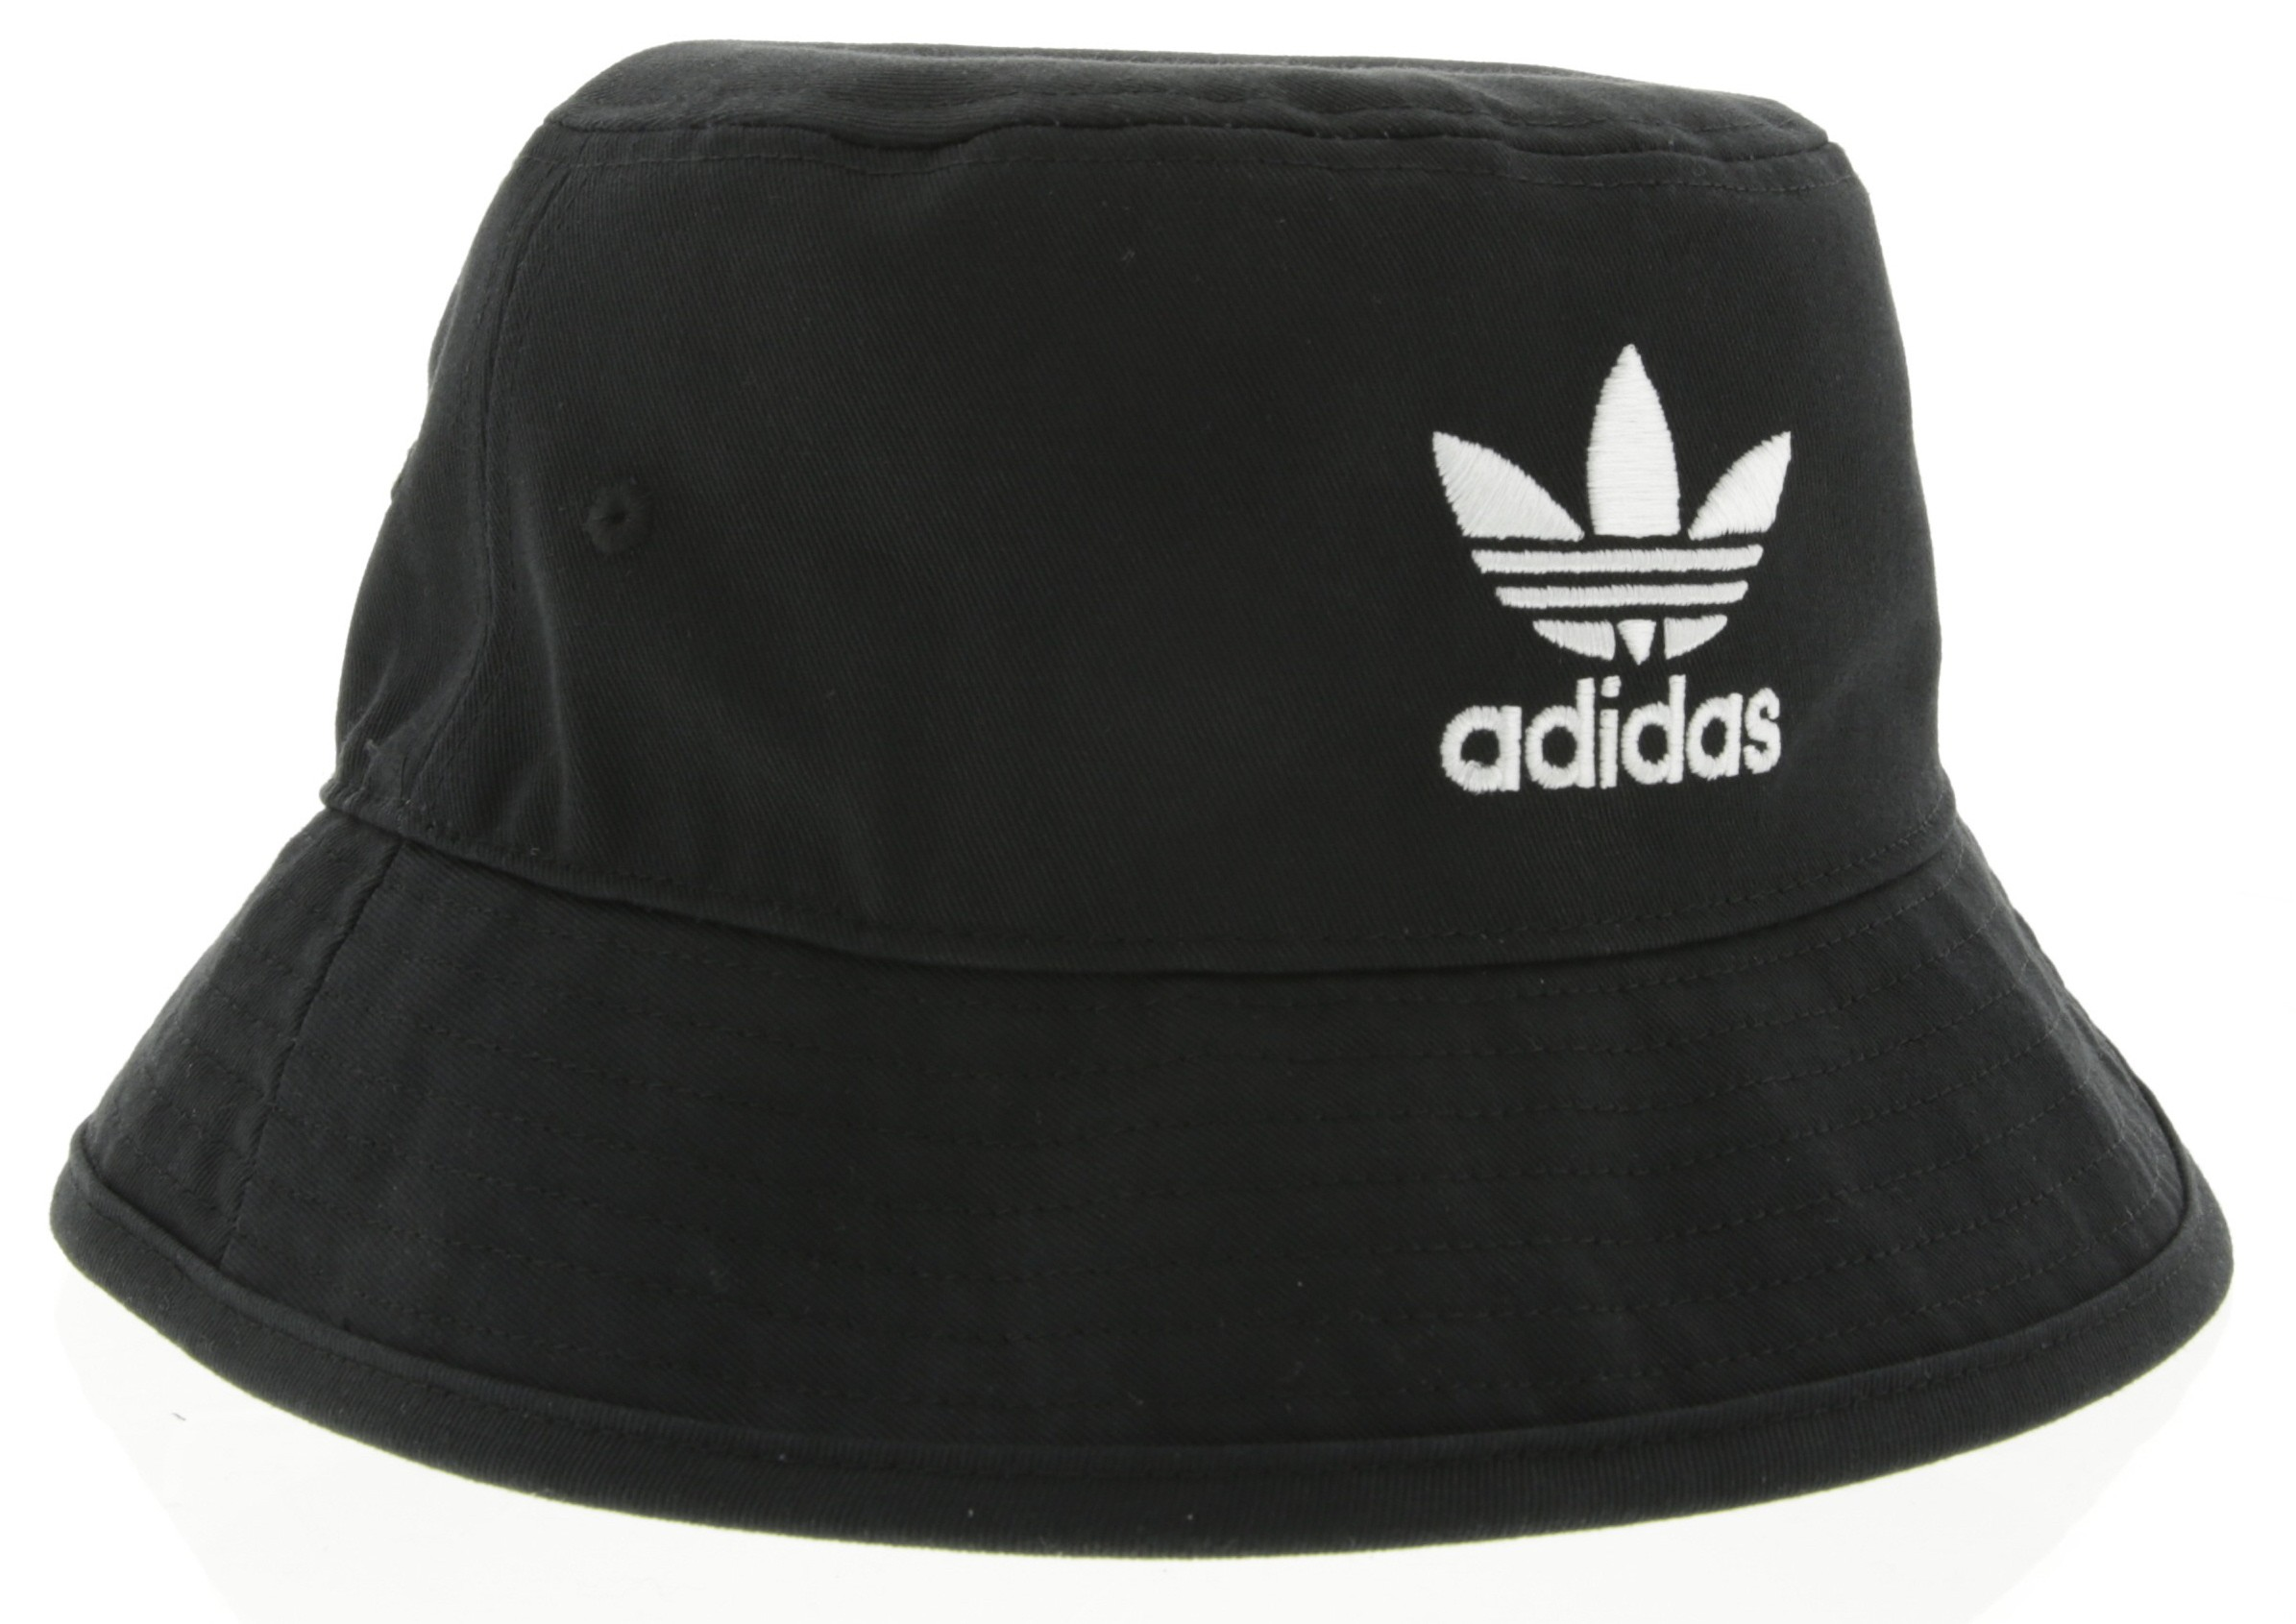 ... adidas bucket hat in black ... WEDLBCG